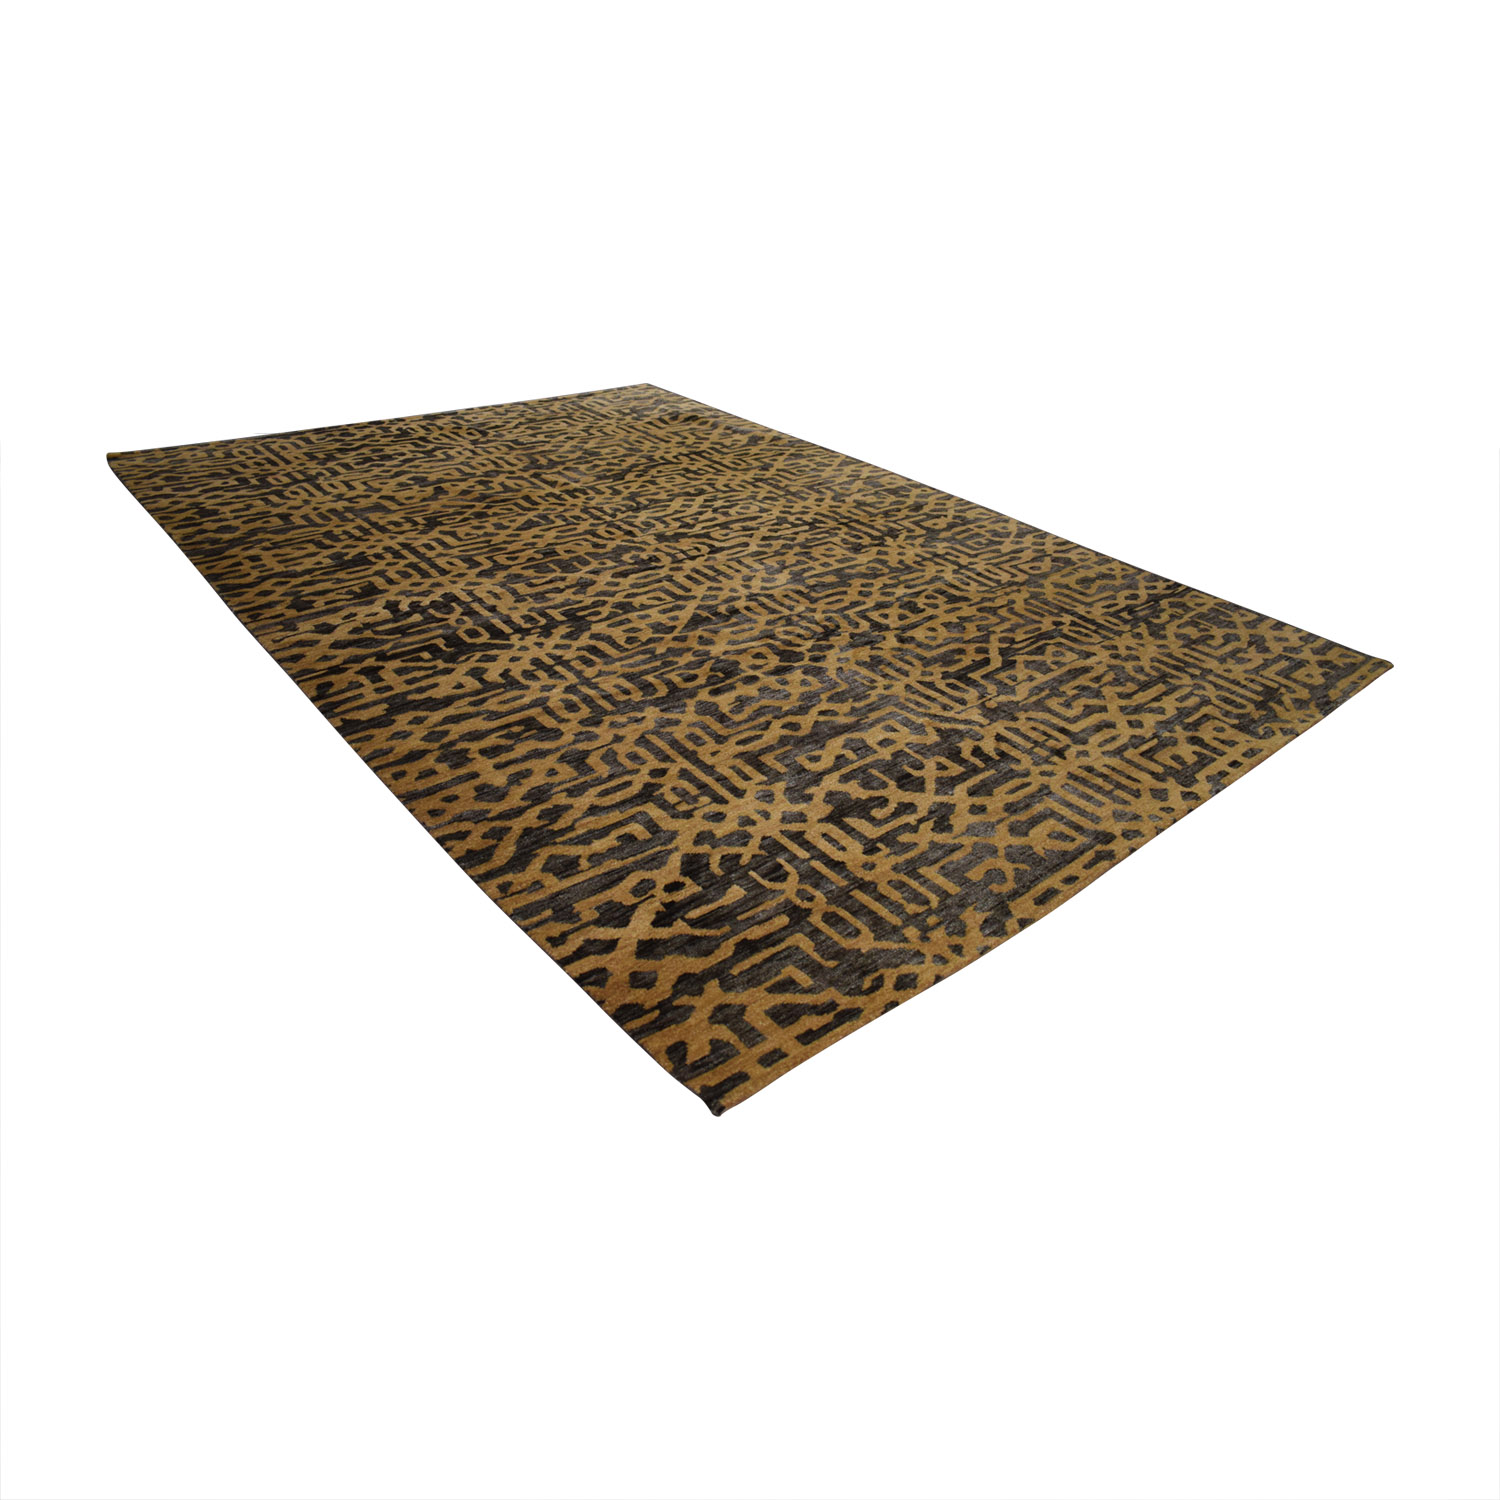 buy Obeetee Obeetee Handknotted Lattice Chocolate and Tan Rug online